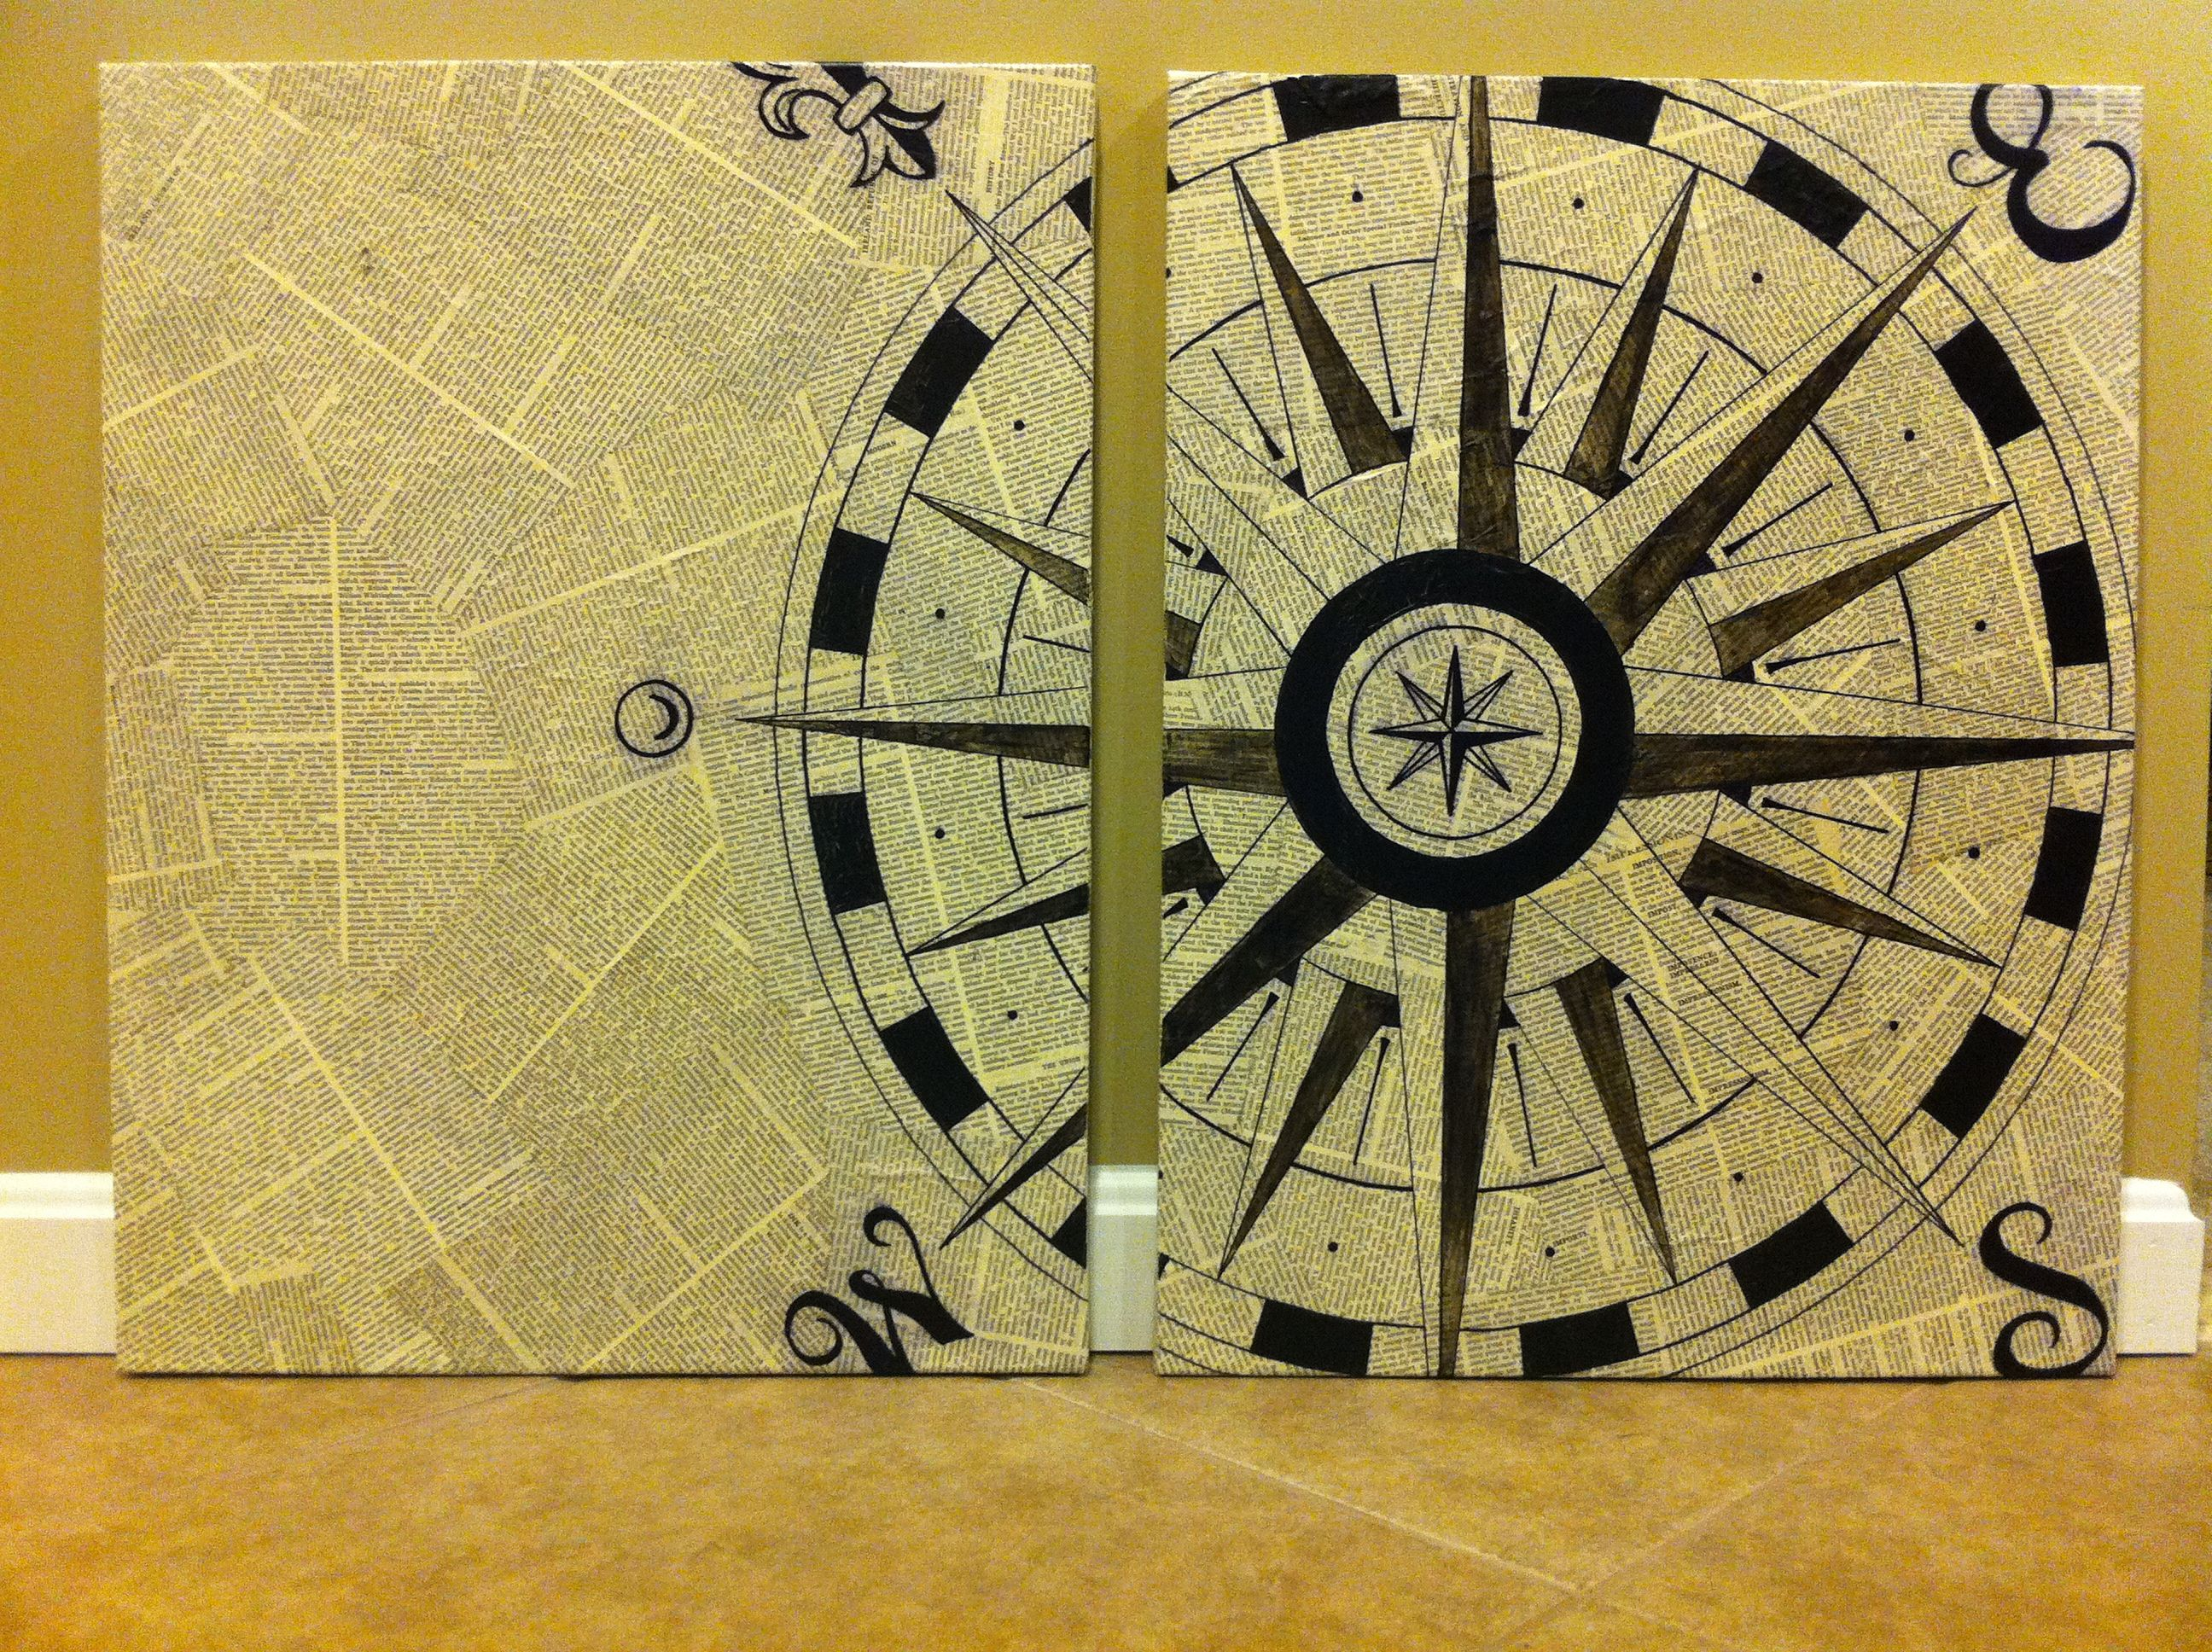 canvas+modge podge+old book pages+sharpie= awesome compass art ...